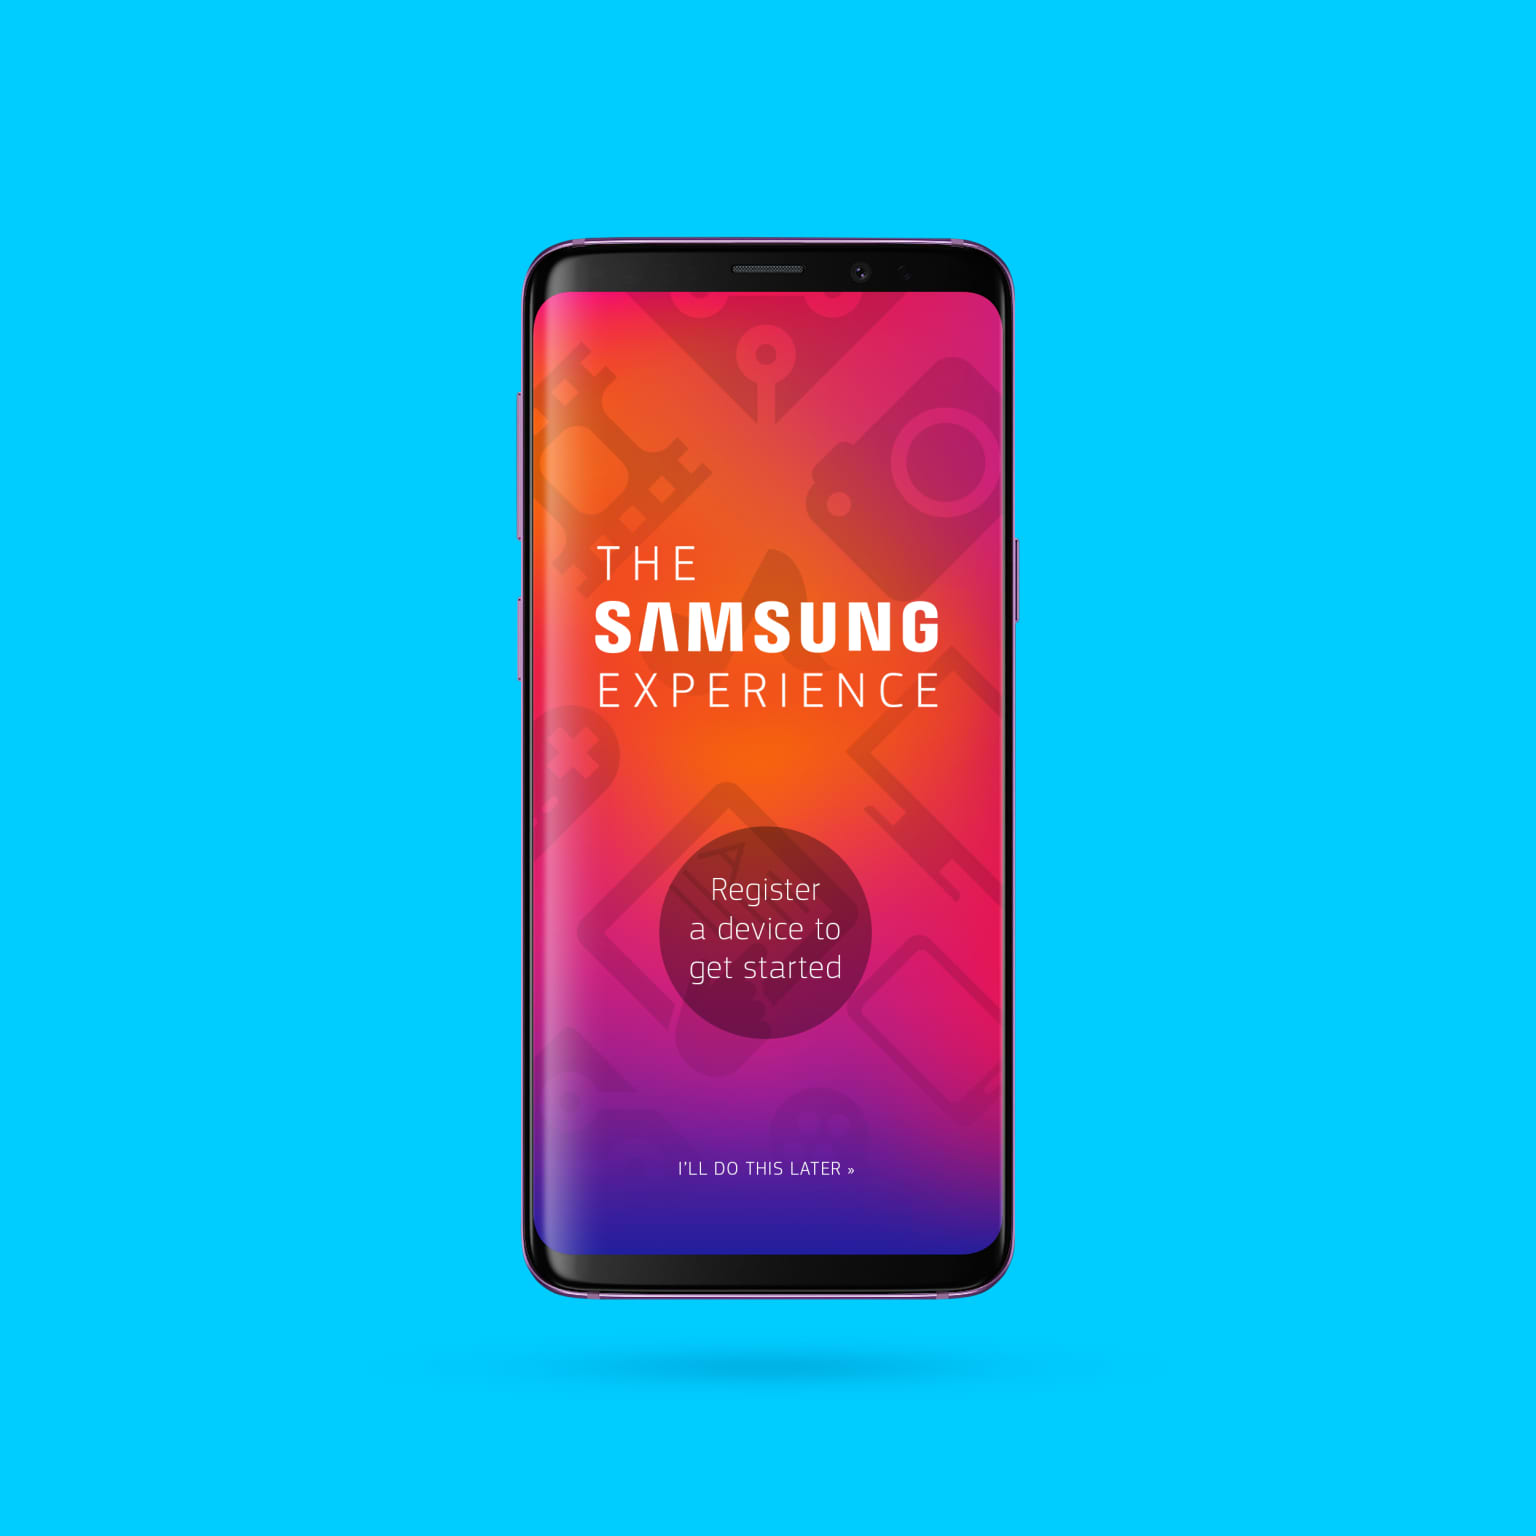 The Samsung Experience